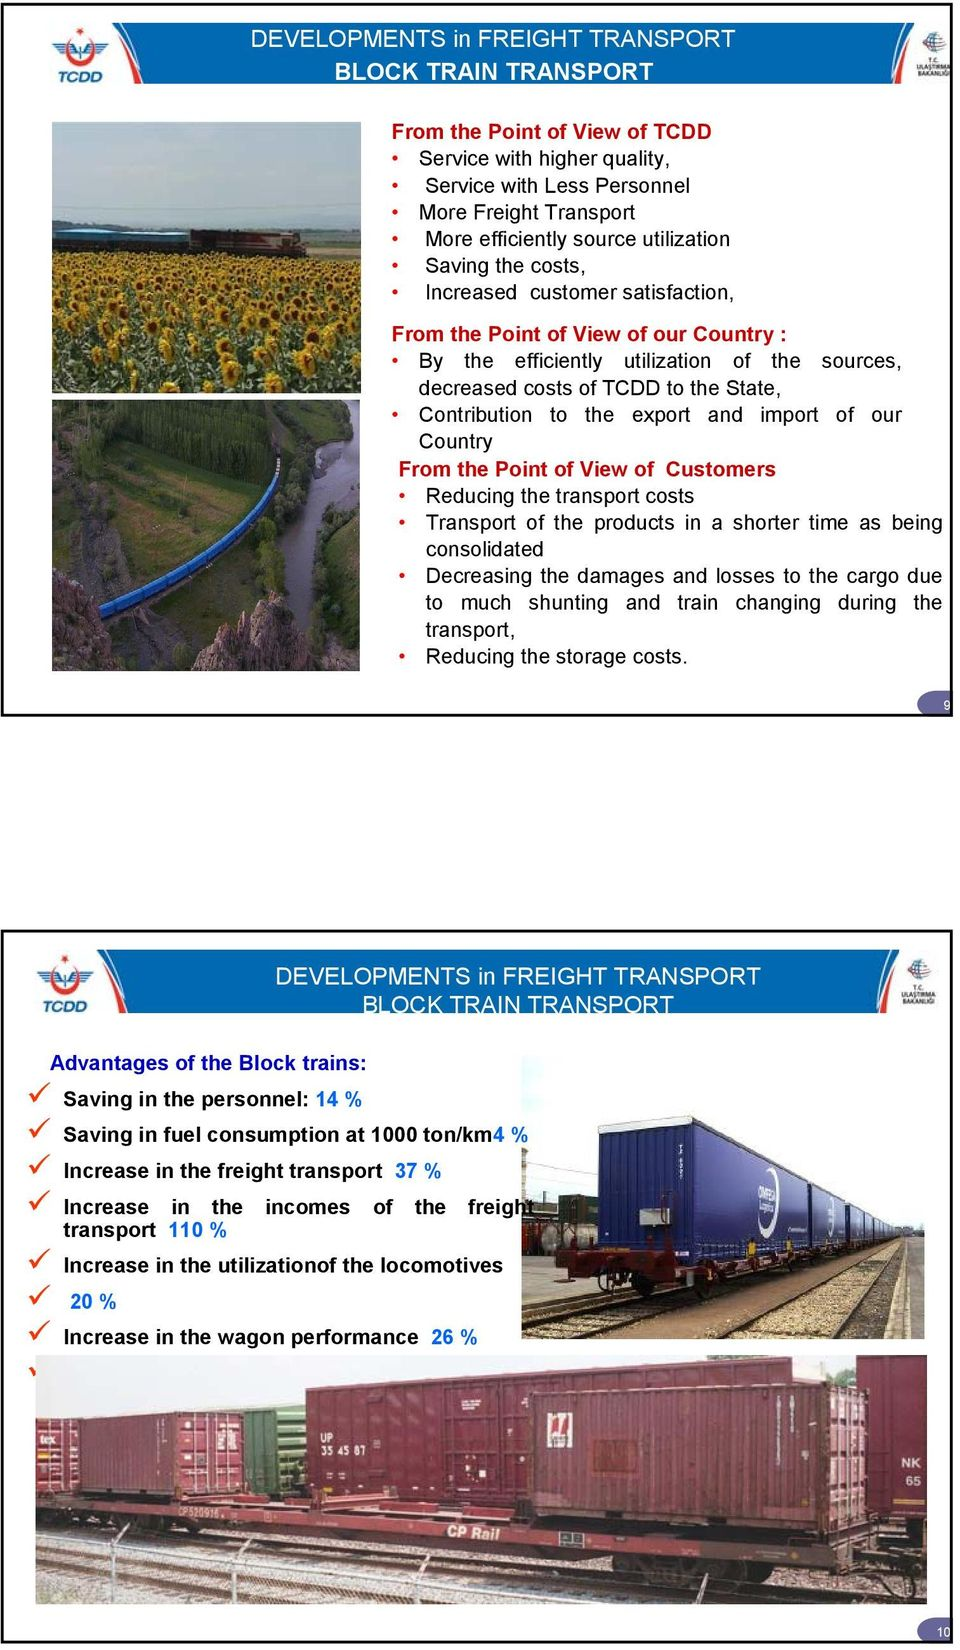 export and import of our Country From the Point of View of Customers Reducing the transport costs Transport of the products in a shorter time as being consolidated Decreasing the damages and losses